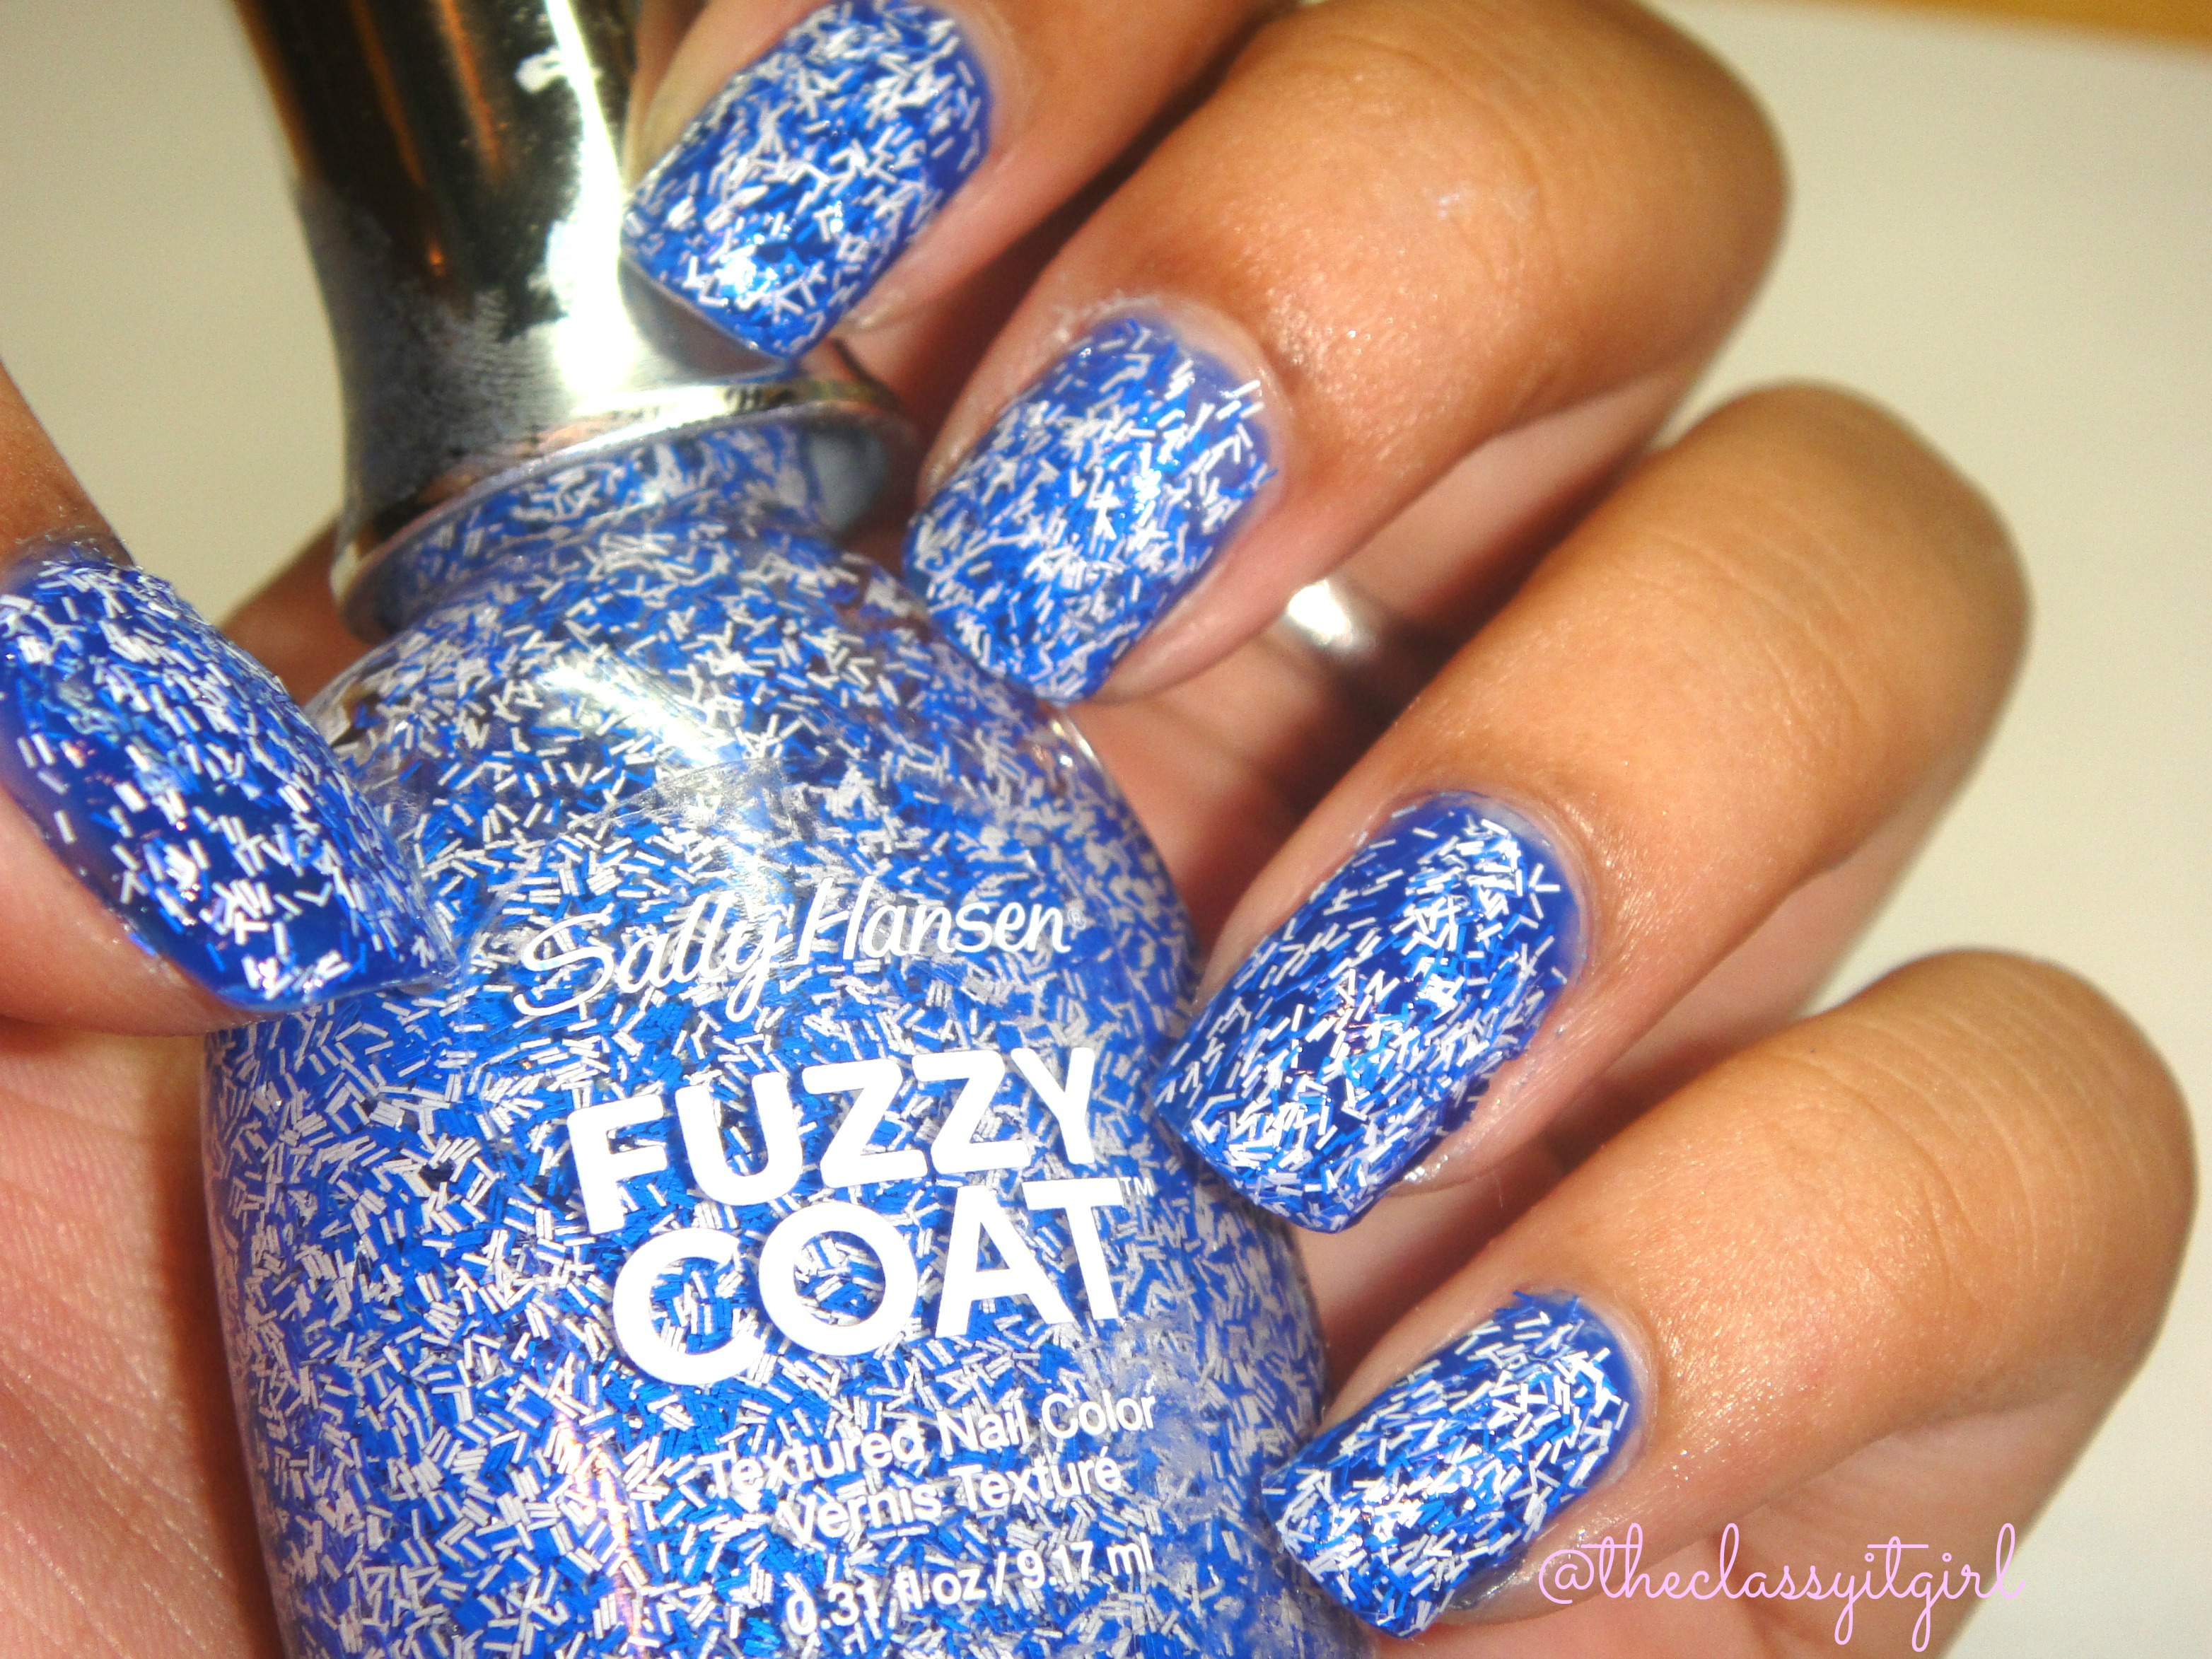 Sally Hansen Fuzzy Coat Nail Polish Review & Demo! | The Classy It Girl